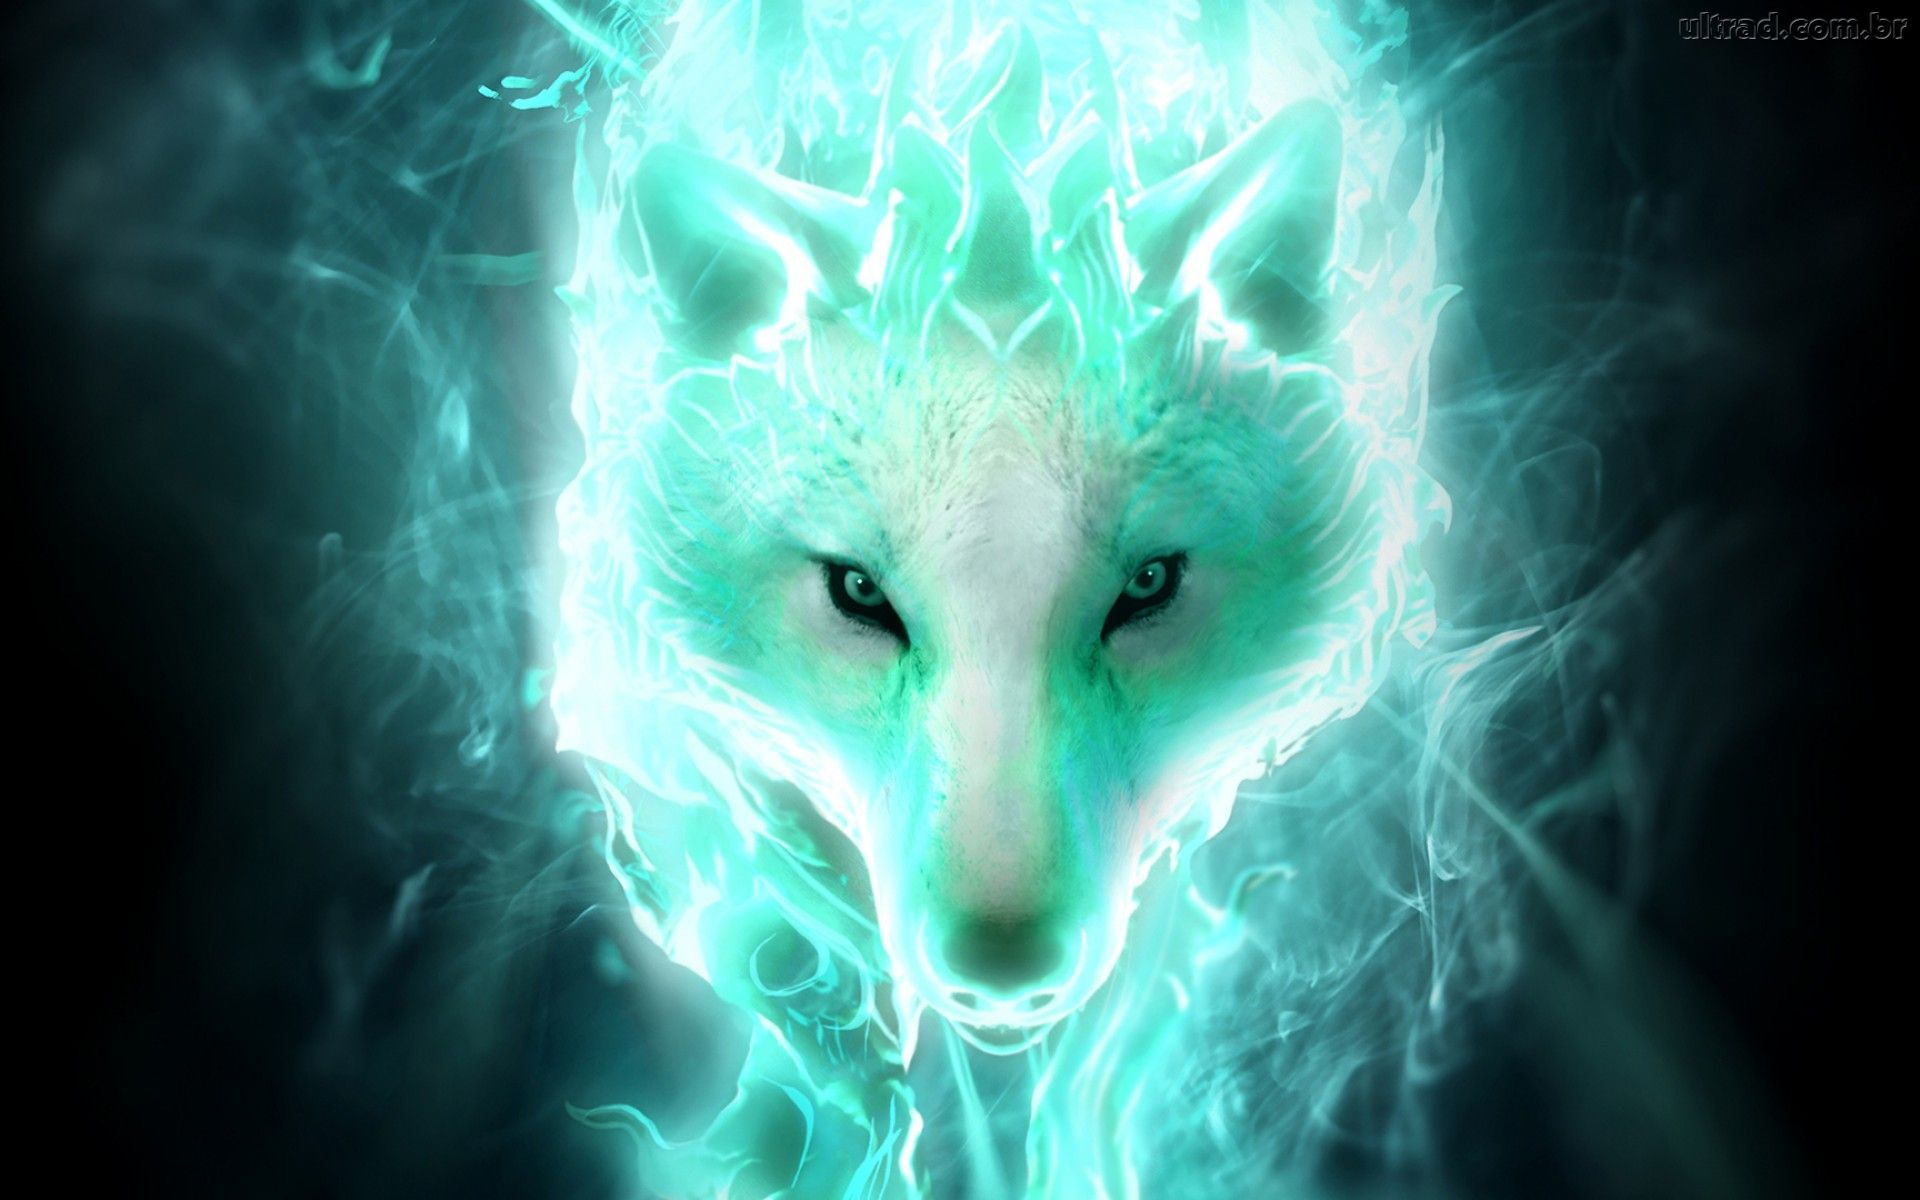 White Spirit Wolf Computer Wallpapers Desktop Backgrounds 1920x1200 Id 553440 Wolf Wallpaper Wolf Background Fantasy Wolf